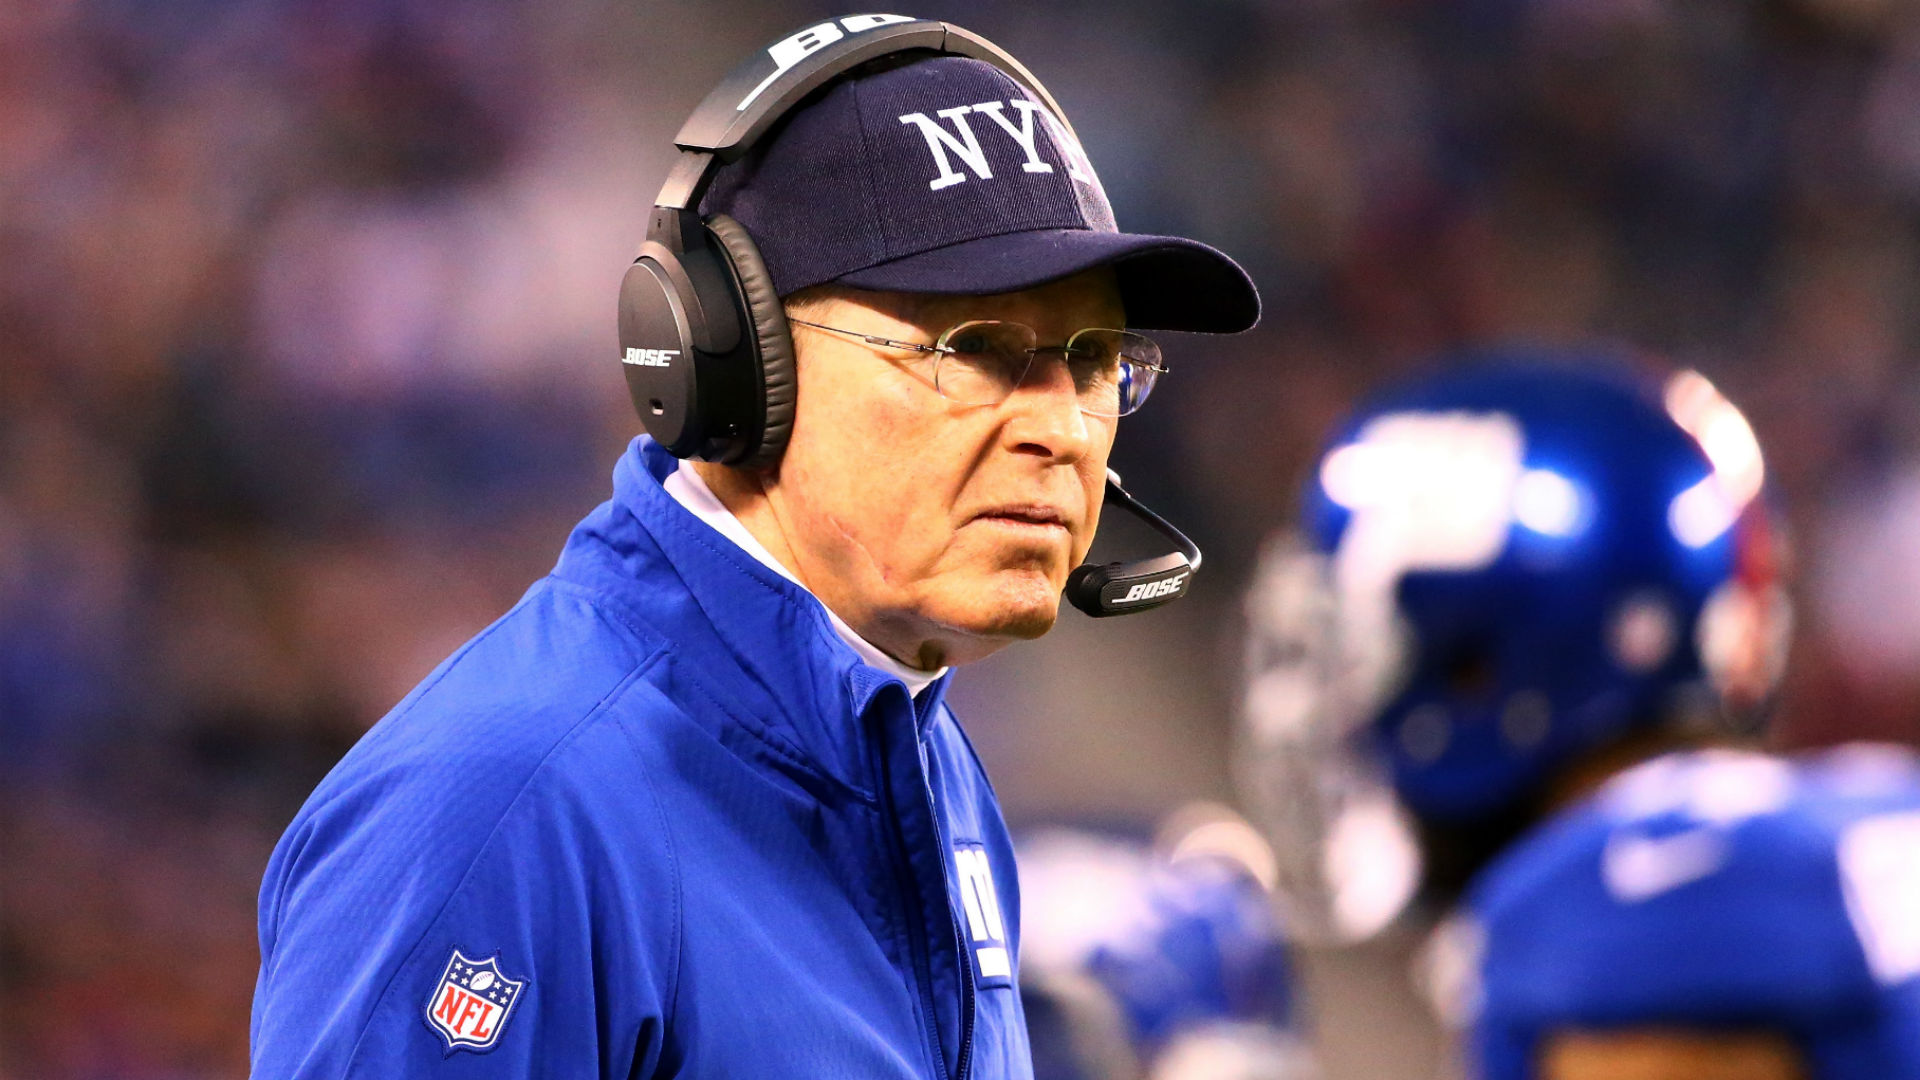 Coughlin-Tom-021915-USNews-Getty-FTR